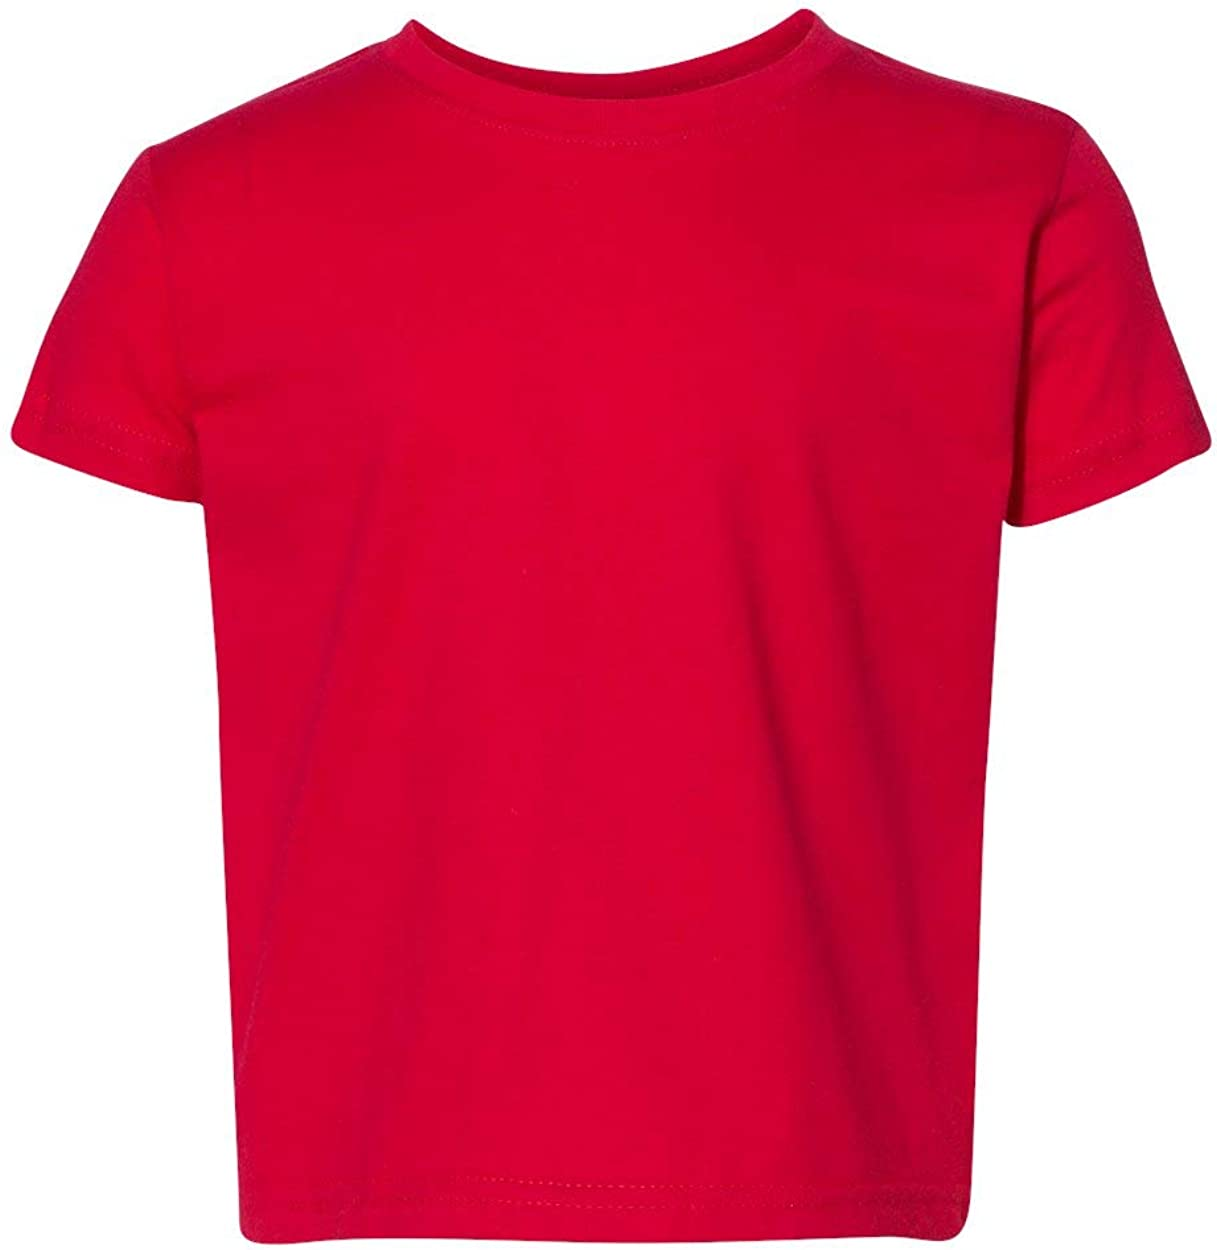 Next Level Baby Boy's Cotton Tear-Away Label T-Shirt, RED, 4T